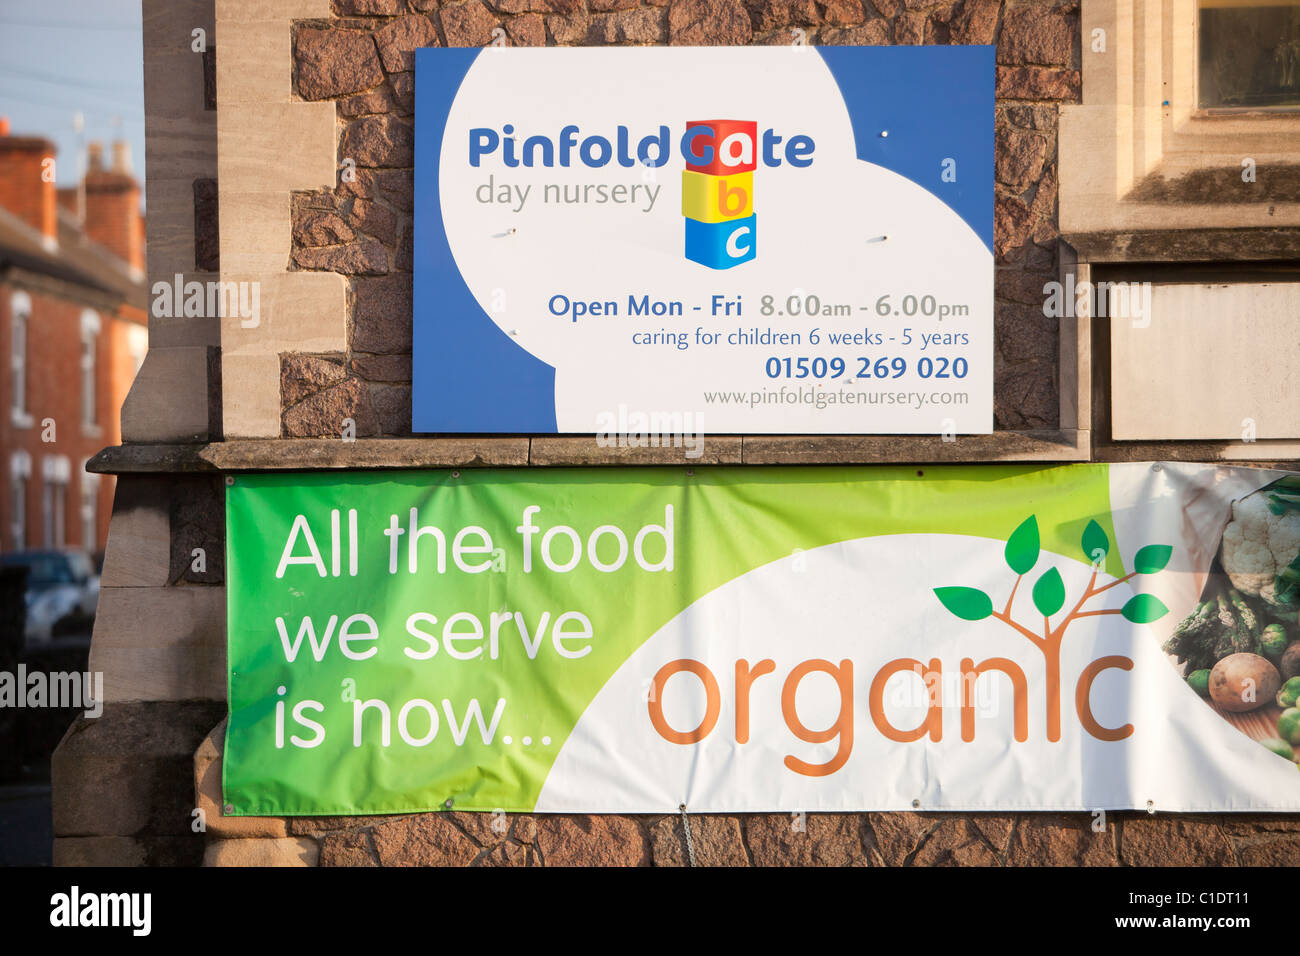 A sign about organic food on a nursery school building in Loughborough, Leicestershire, UK. - Stock Image